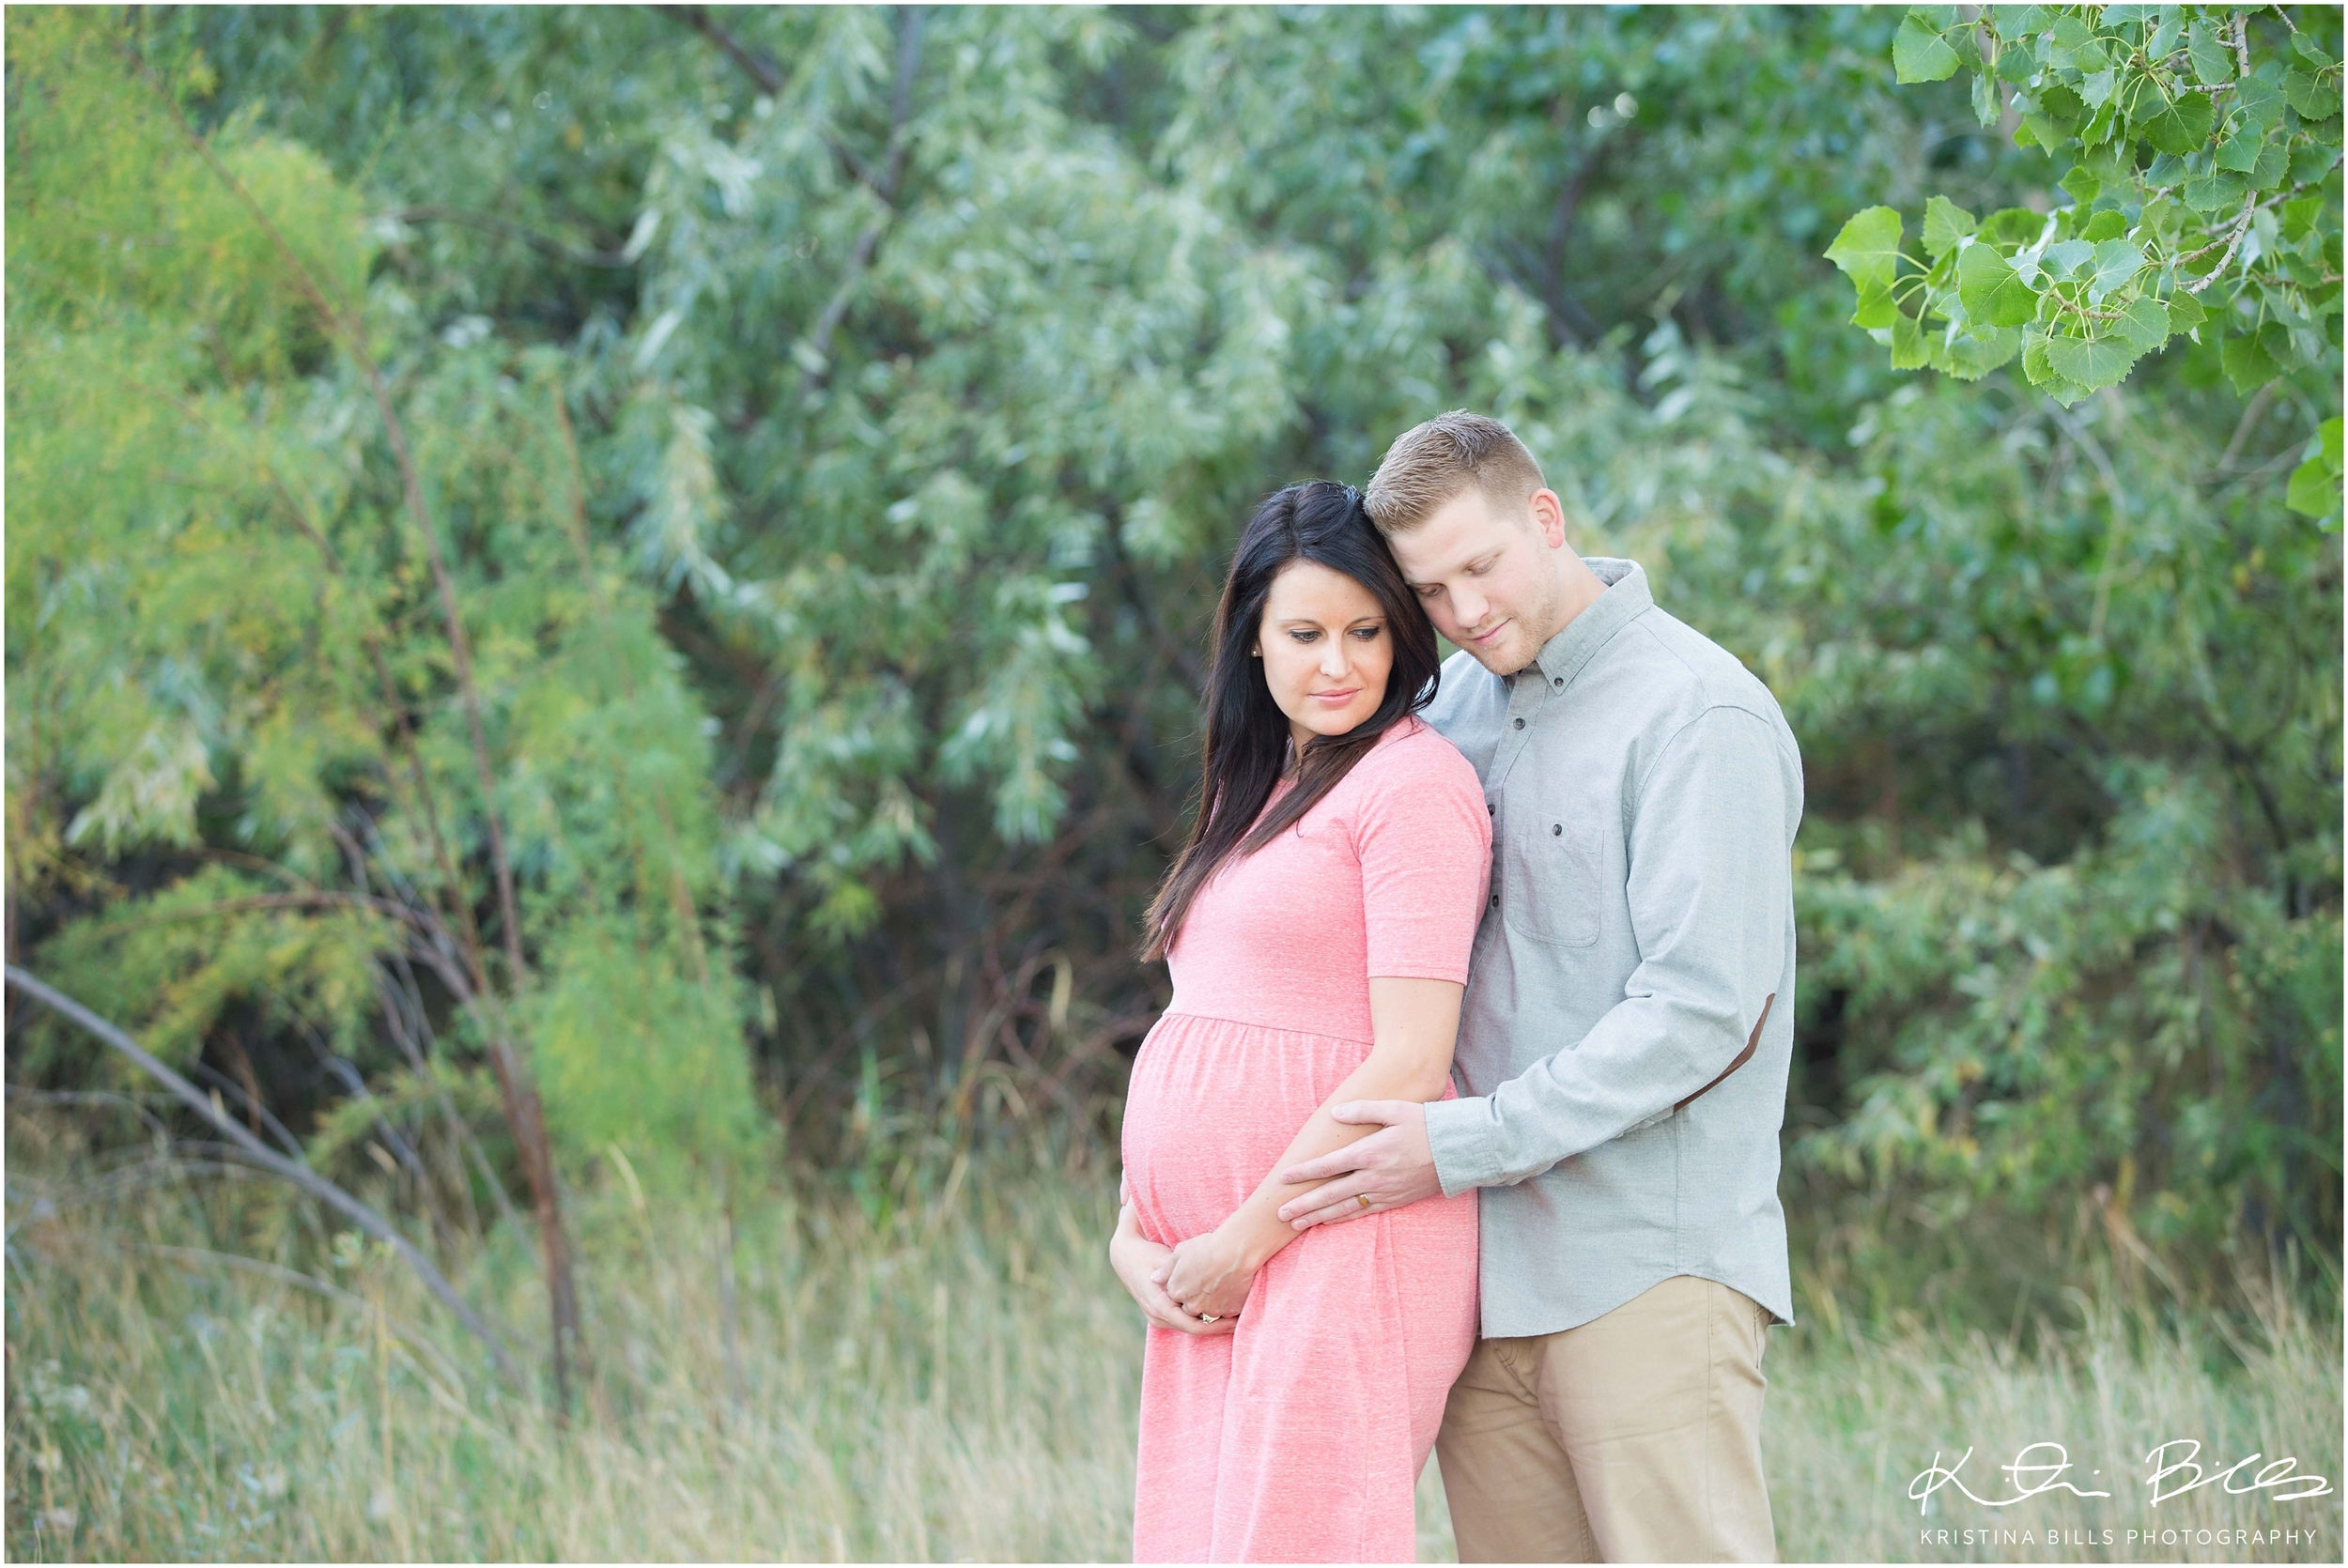 the thurston family utah maternity photographer kristina utahmaternityphotographer 0004 jpg